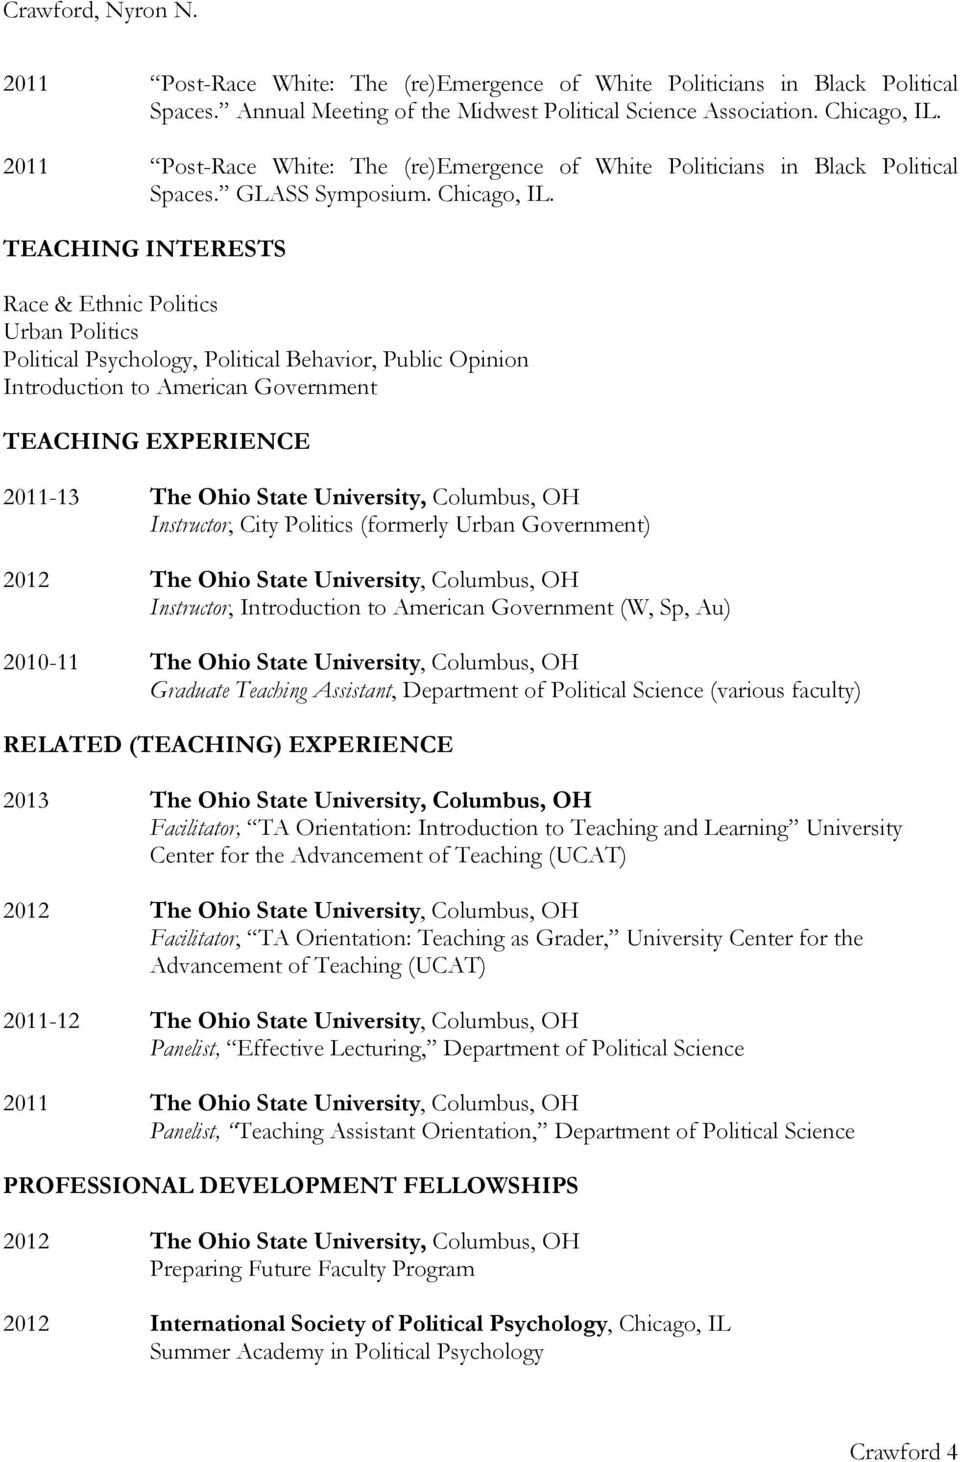 TEACHING INTERESTS Race & Ethnic Politics Urban Politics Political Psychology, Political Behavior, Public Opinion Introduction to American Government TEACHING EXPERIENCE 2011-13 The Ohio State